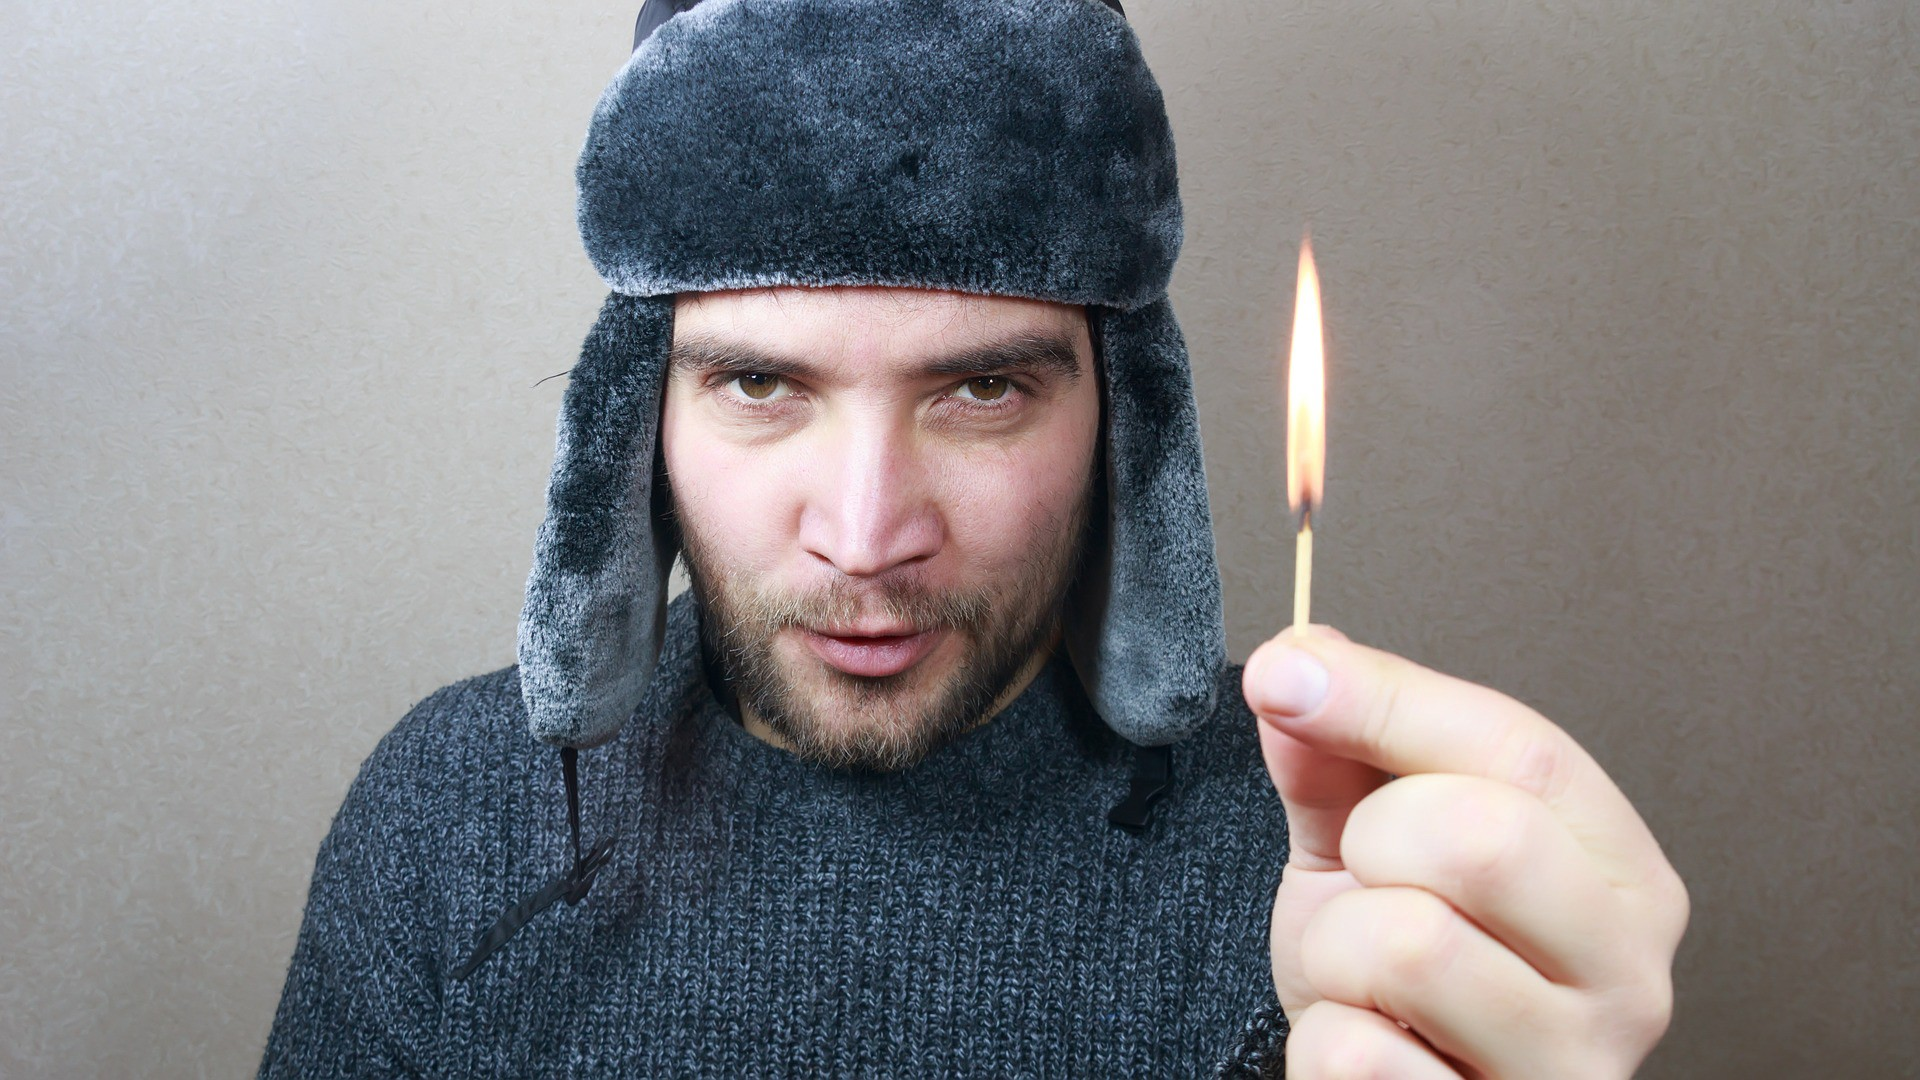 guy in winter hat with lit match